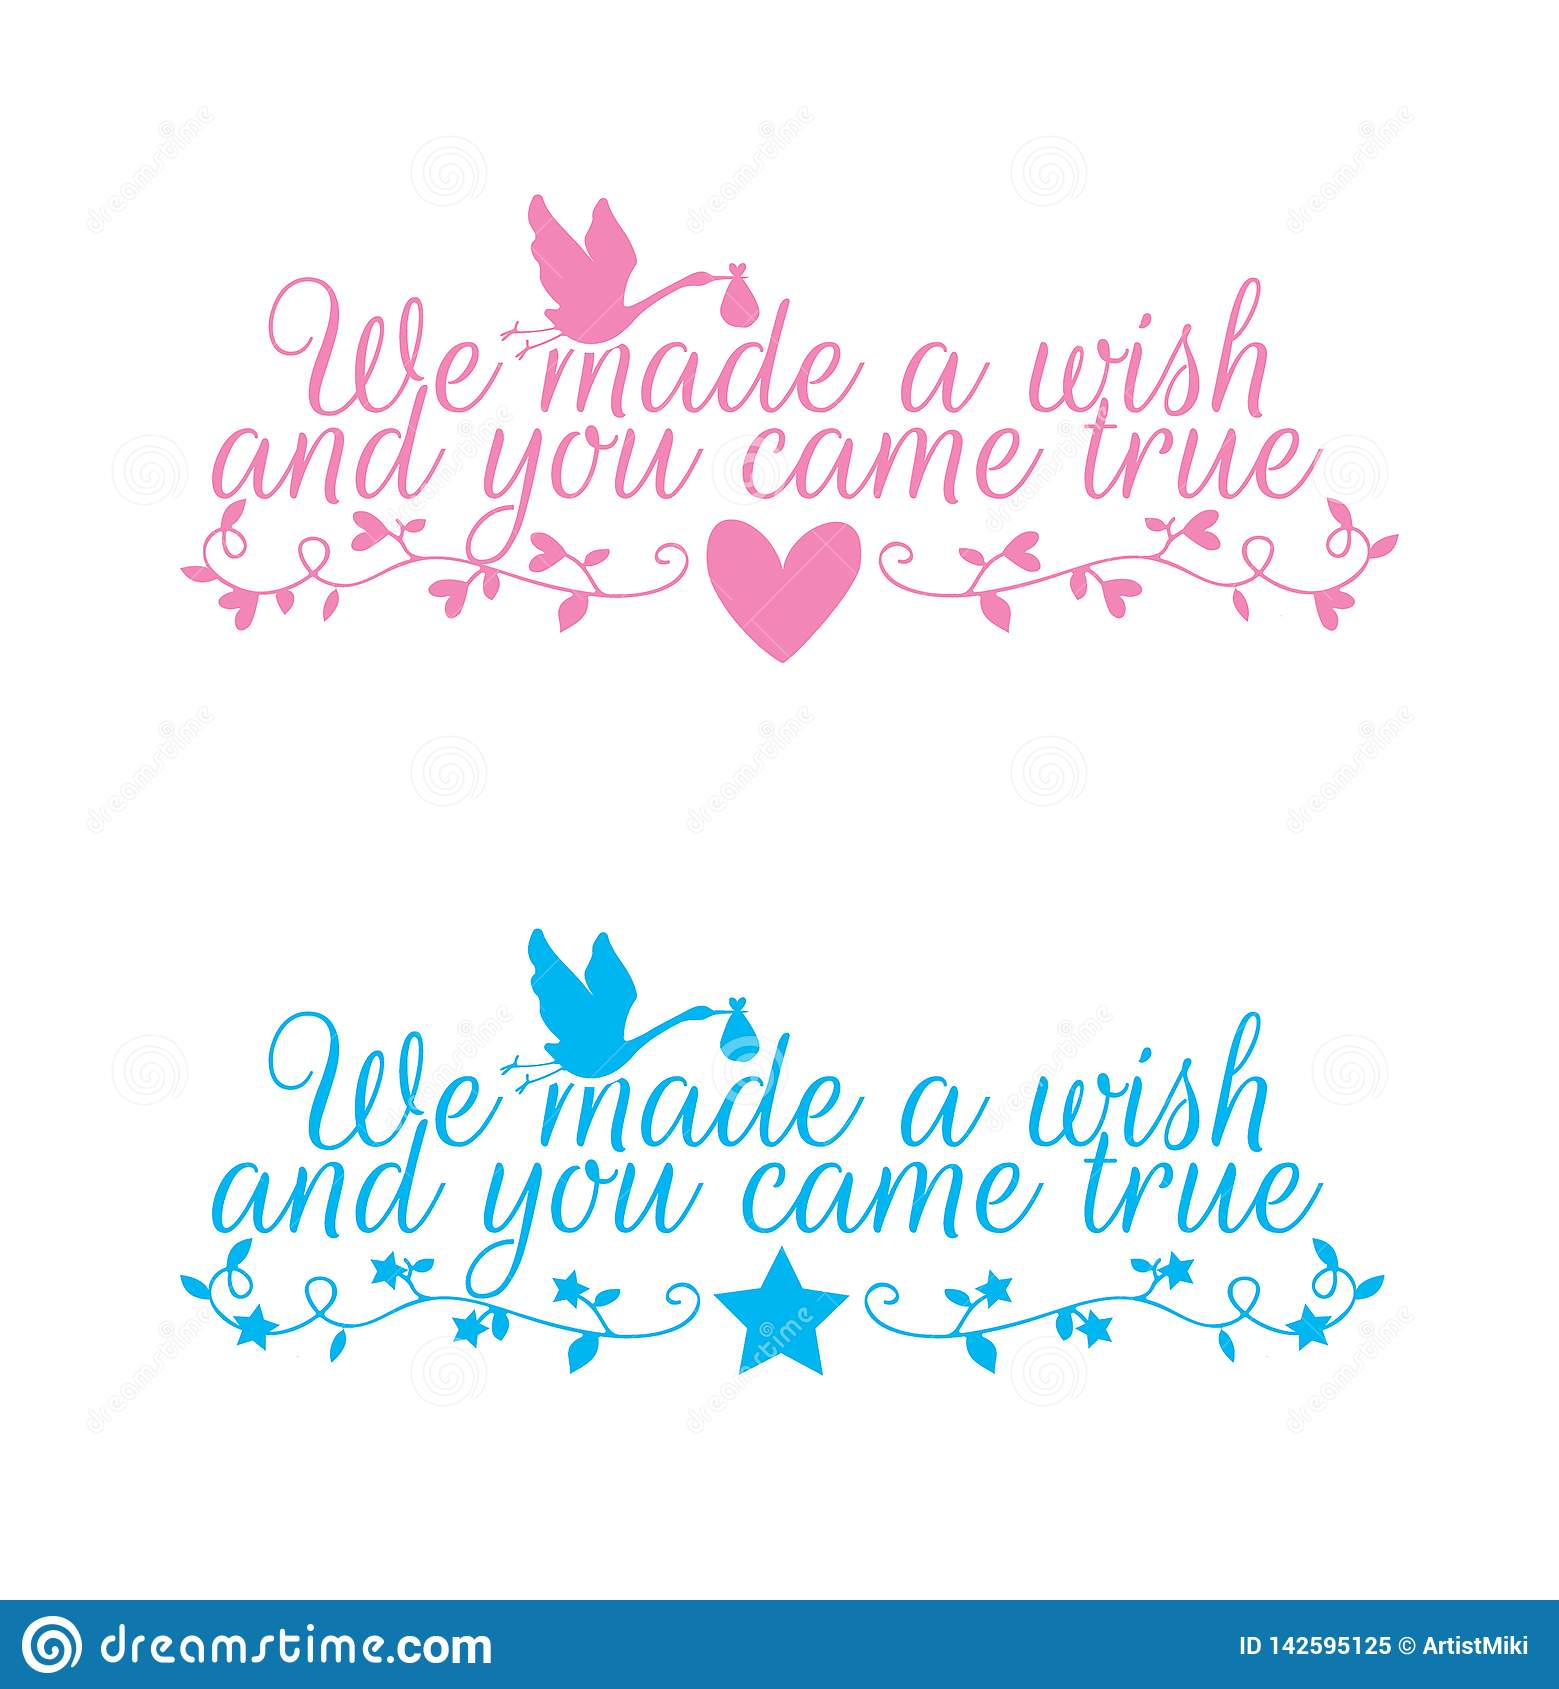 Kids Wall Decals Vector, We made a wish and you came true, Wording Design